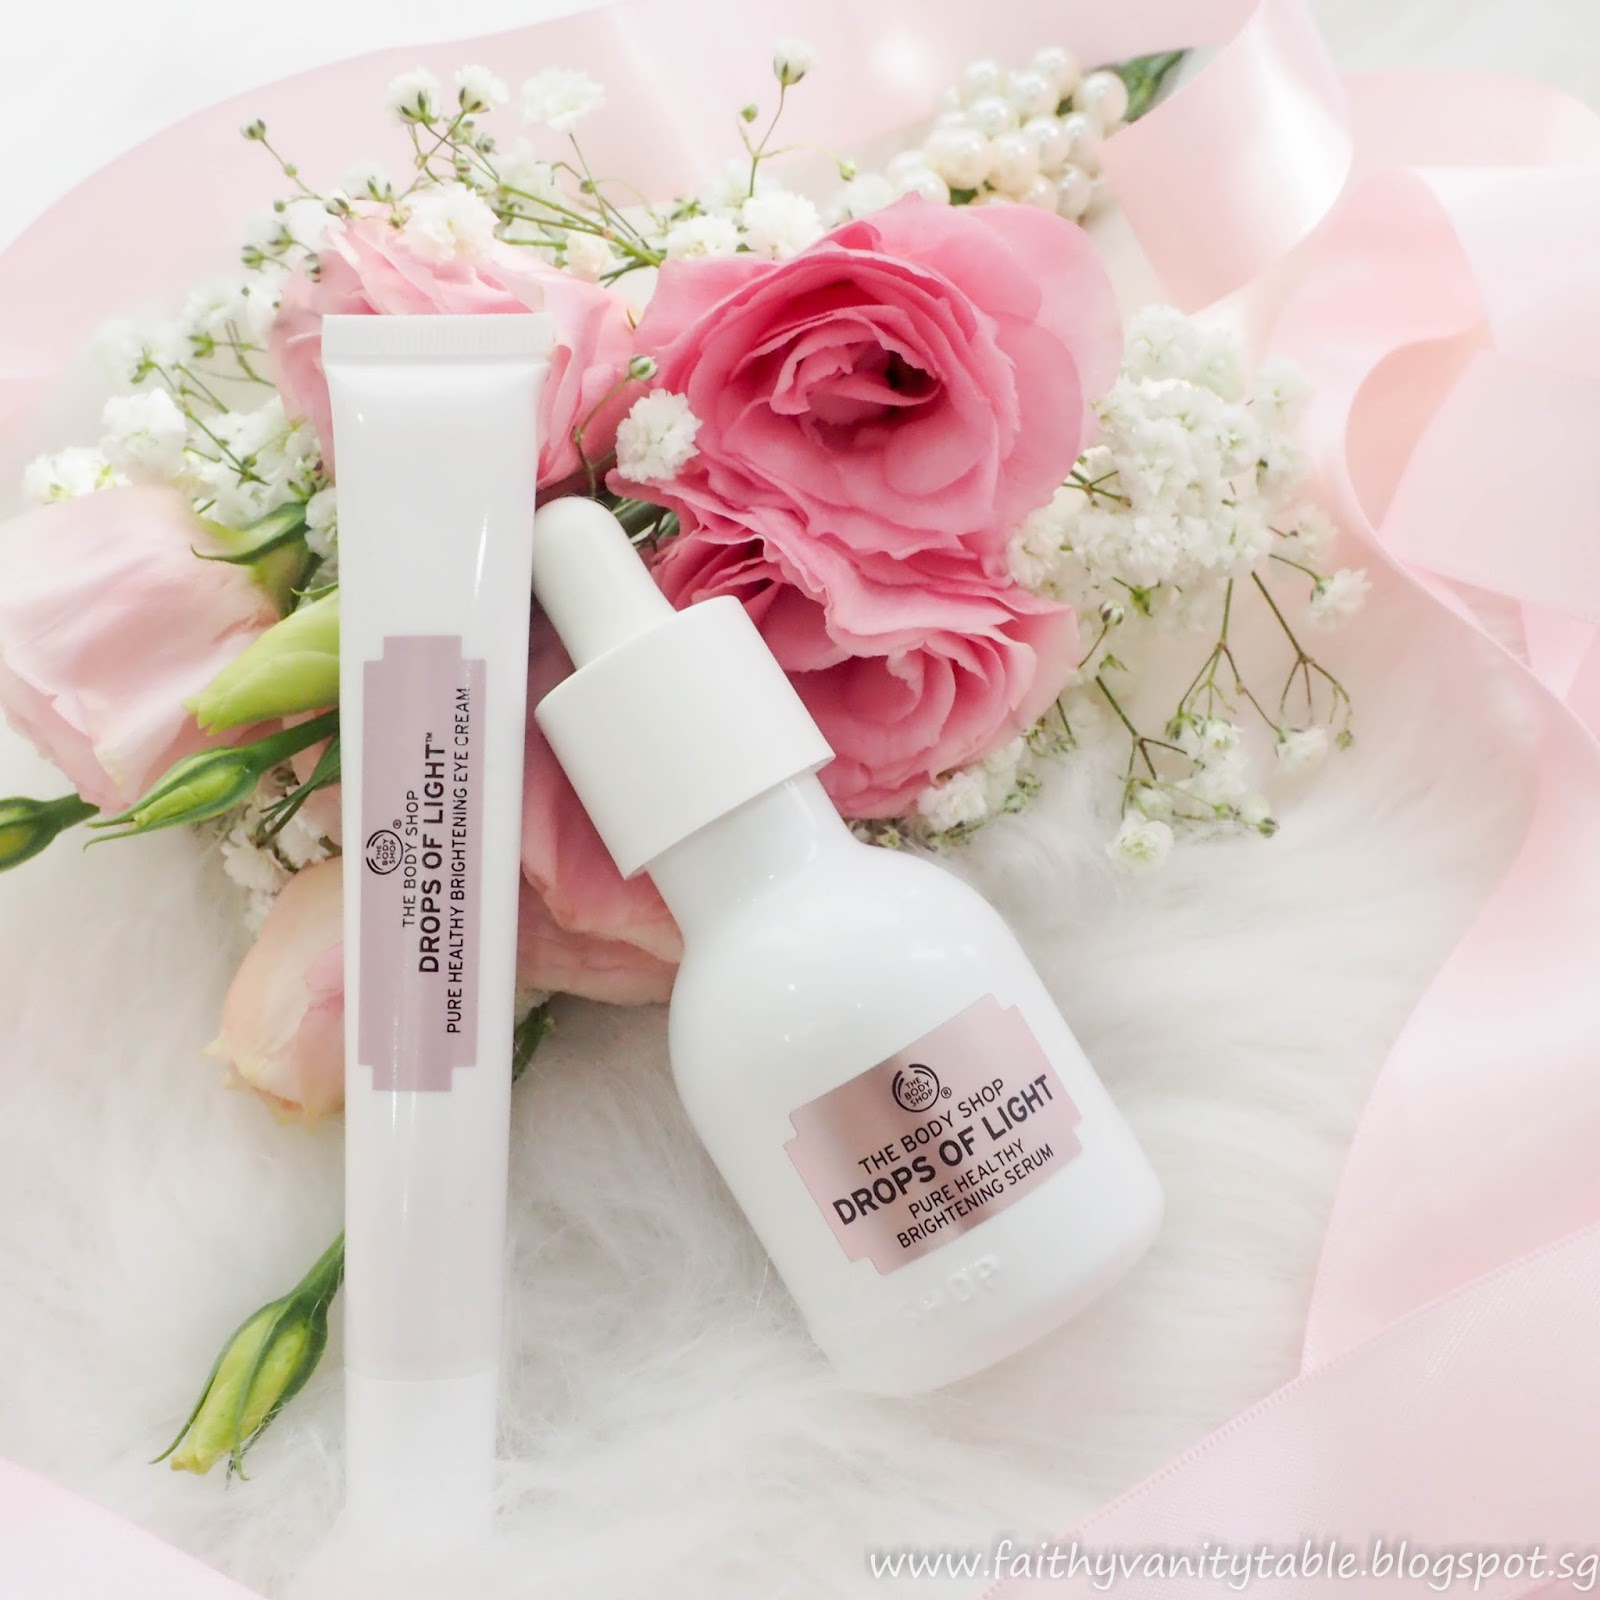 Body Shop Drop Of Light Day Cream Review: Singapore Beauty, Travel And Lifestyle Blog: Review Of The